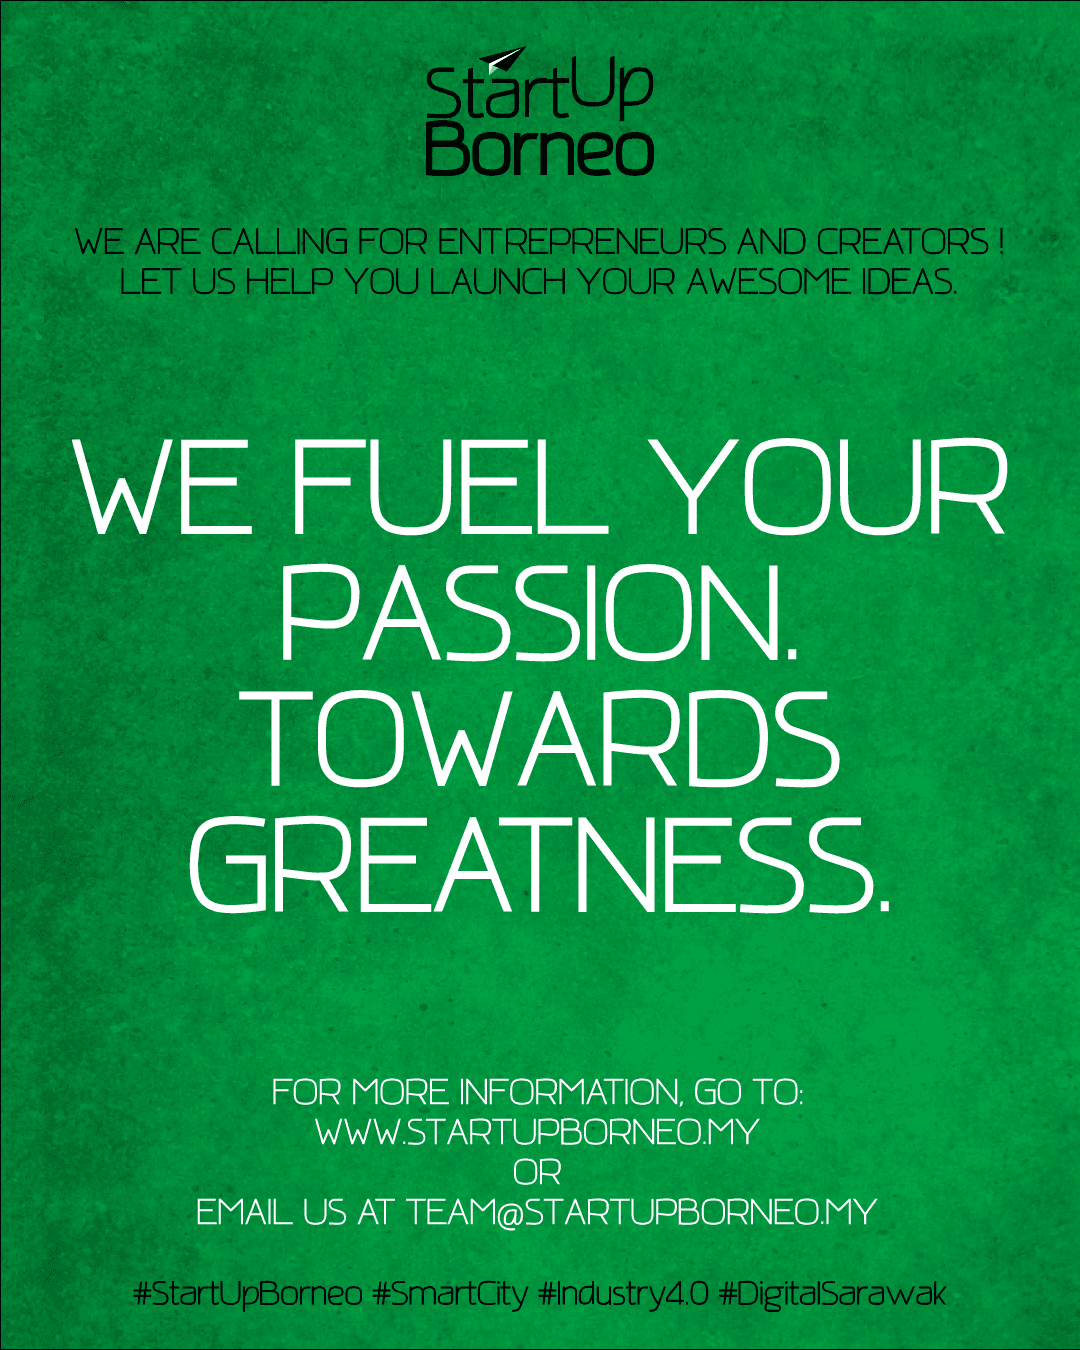 [Poster]We Fuel Your Passion. Towards Greatness.